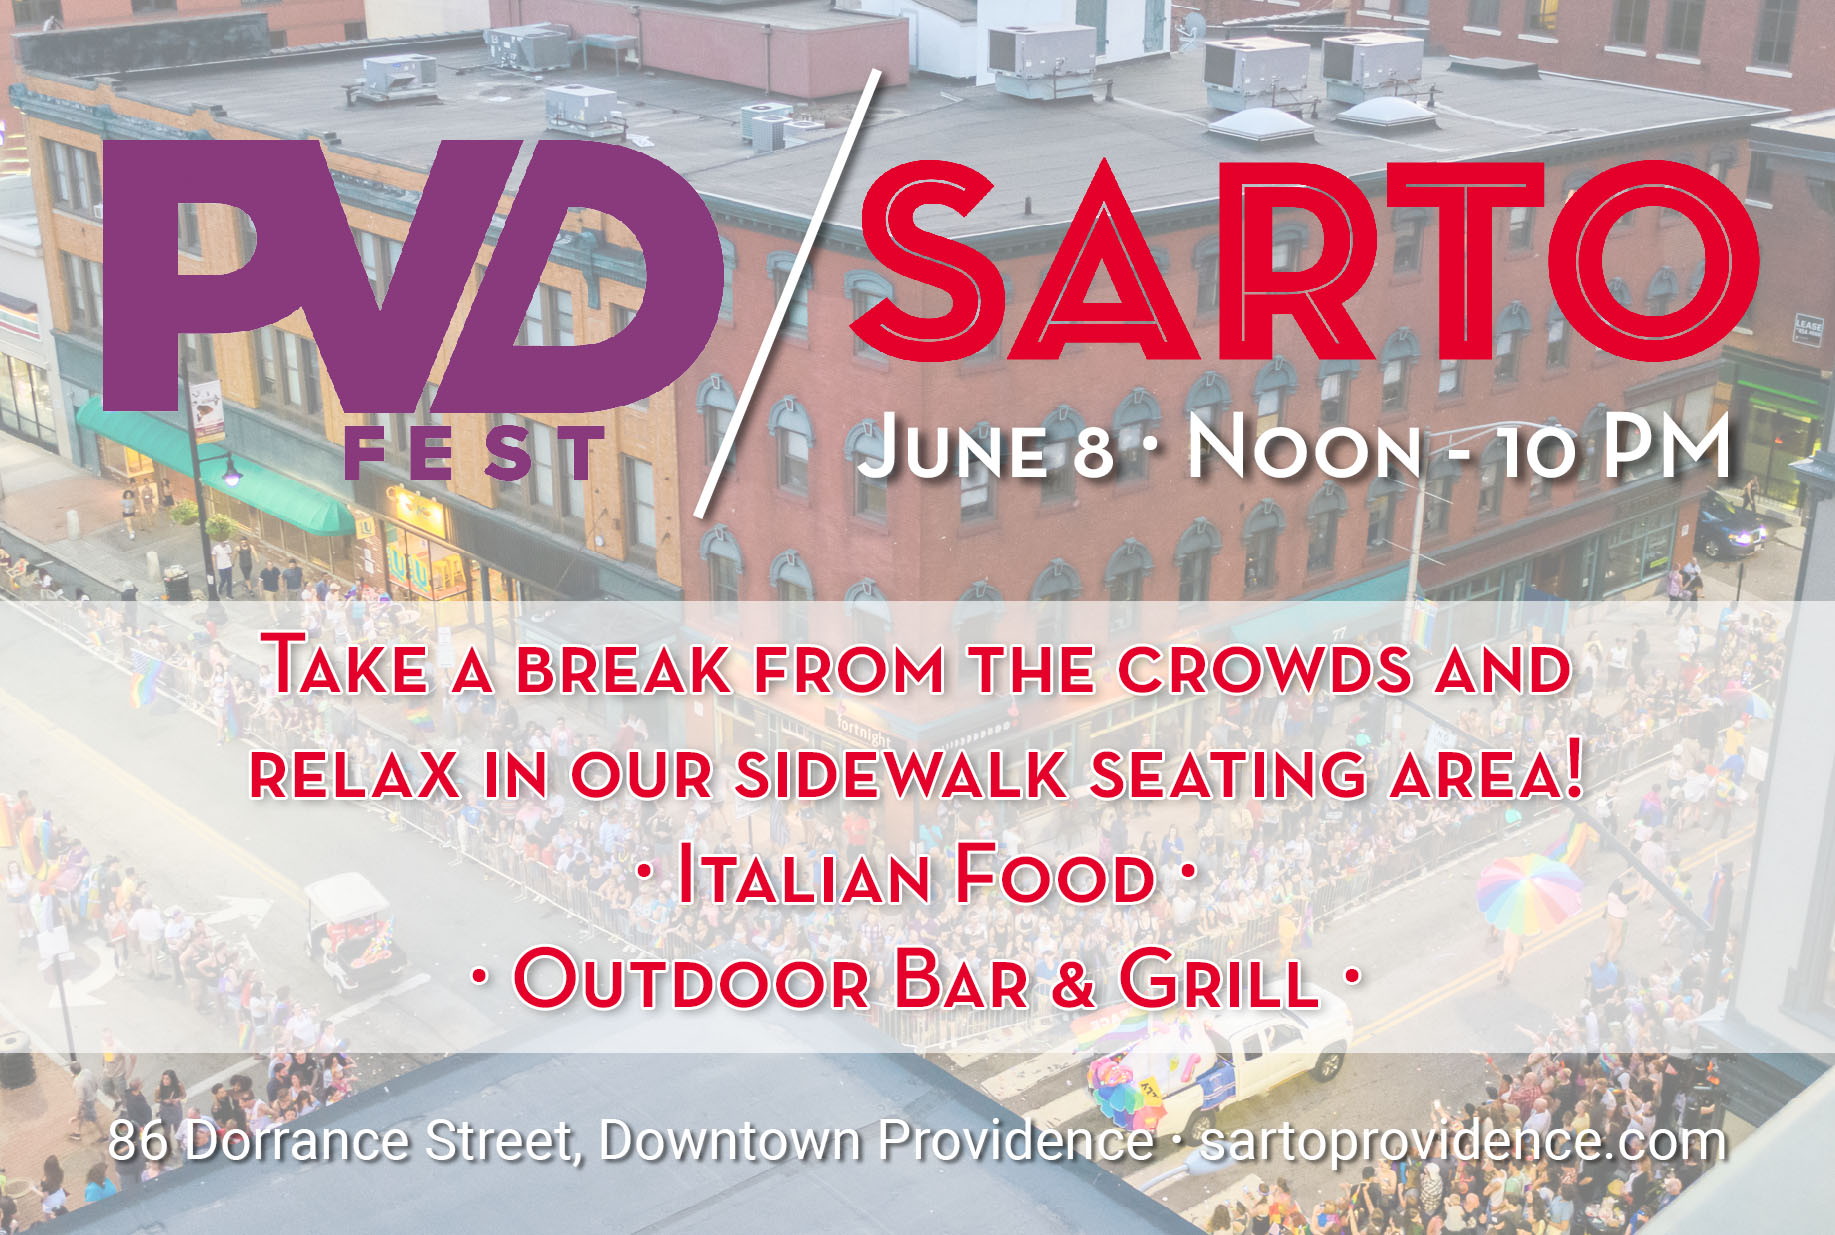 On June 8, while PVDFest is in full swing… - …visit Sarto from noon to 10 PM to enjoy respite in our peaceful outdoor seating area. In addition to taking a relaxing break from the hustle and bustle of the festival, you can also order an ice cold drink and a bite to eat from our outdoor bar and grill. We aim to make your PVDFest experience even more excellent than it's already going to be!